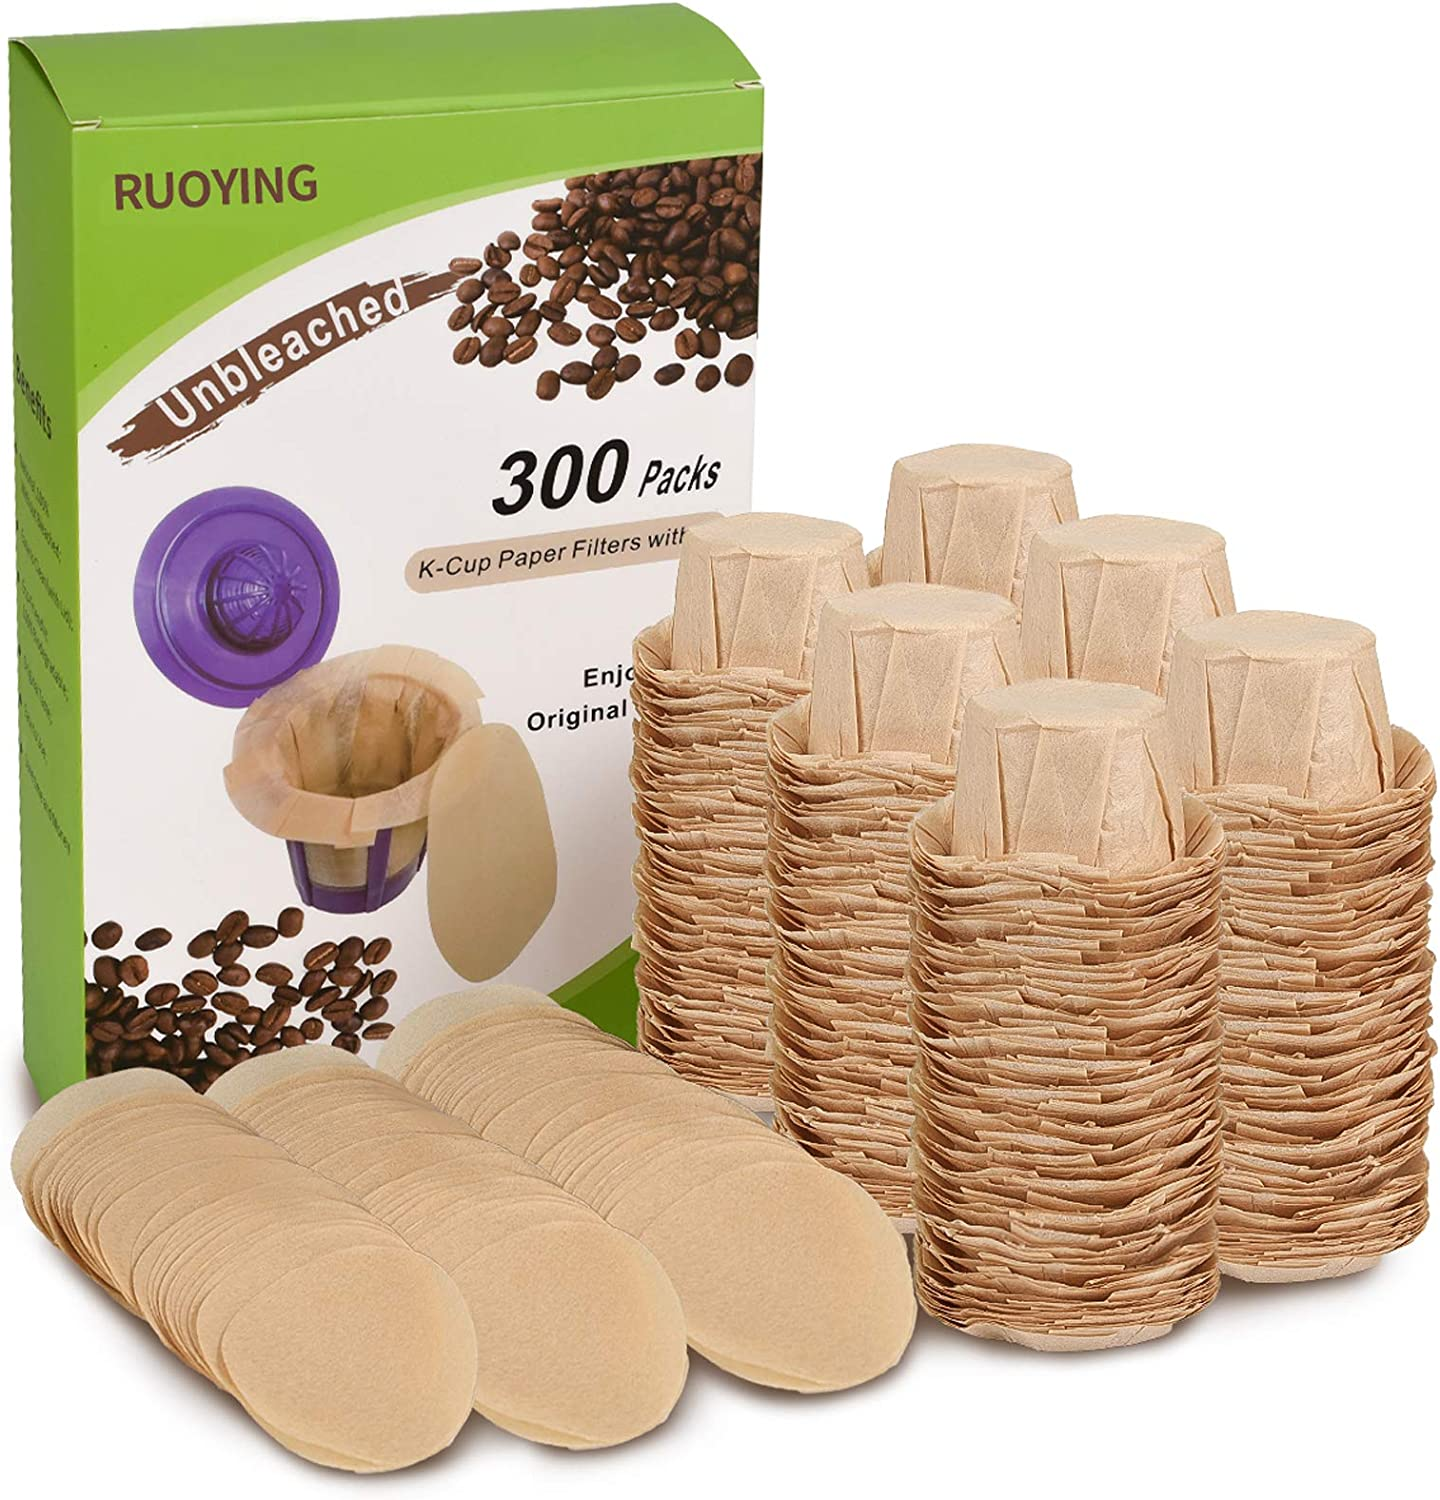 Eco-Sopure Unbleached K cup Max 54% OFF Coffee with Lid Filters Dispos Paper OFFicial mail order